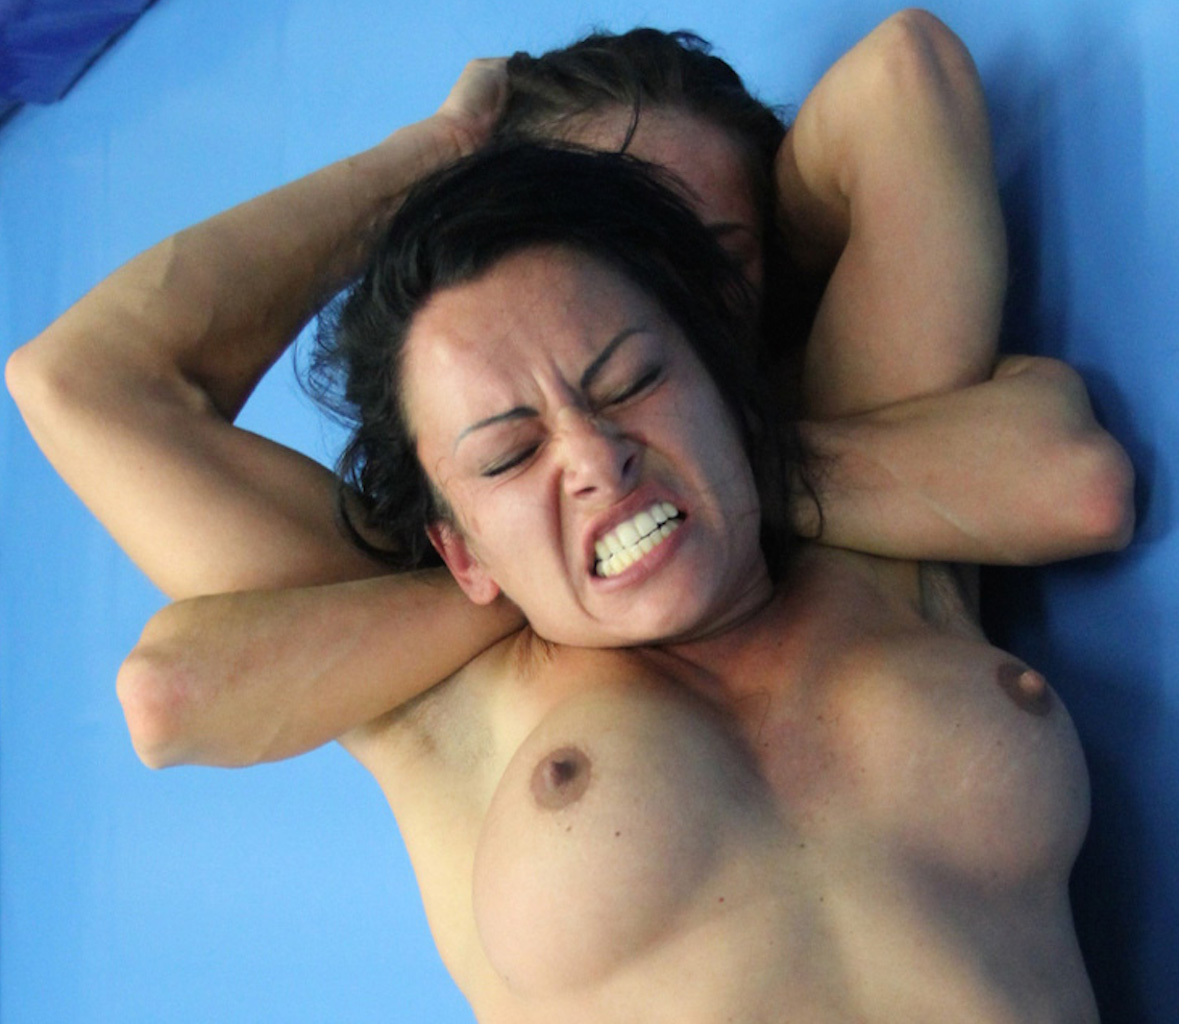 Nude Wrestling Photos